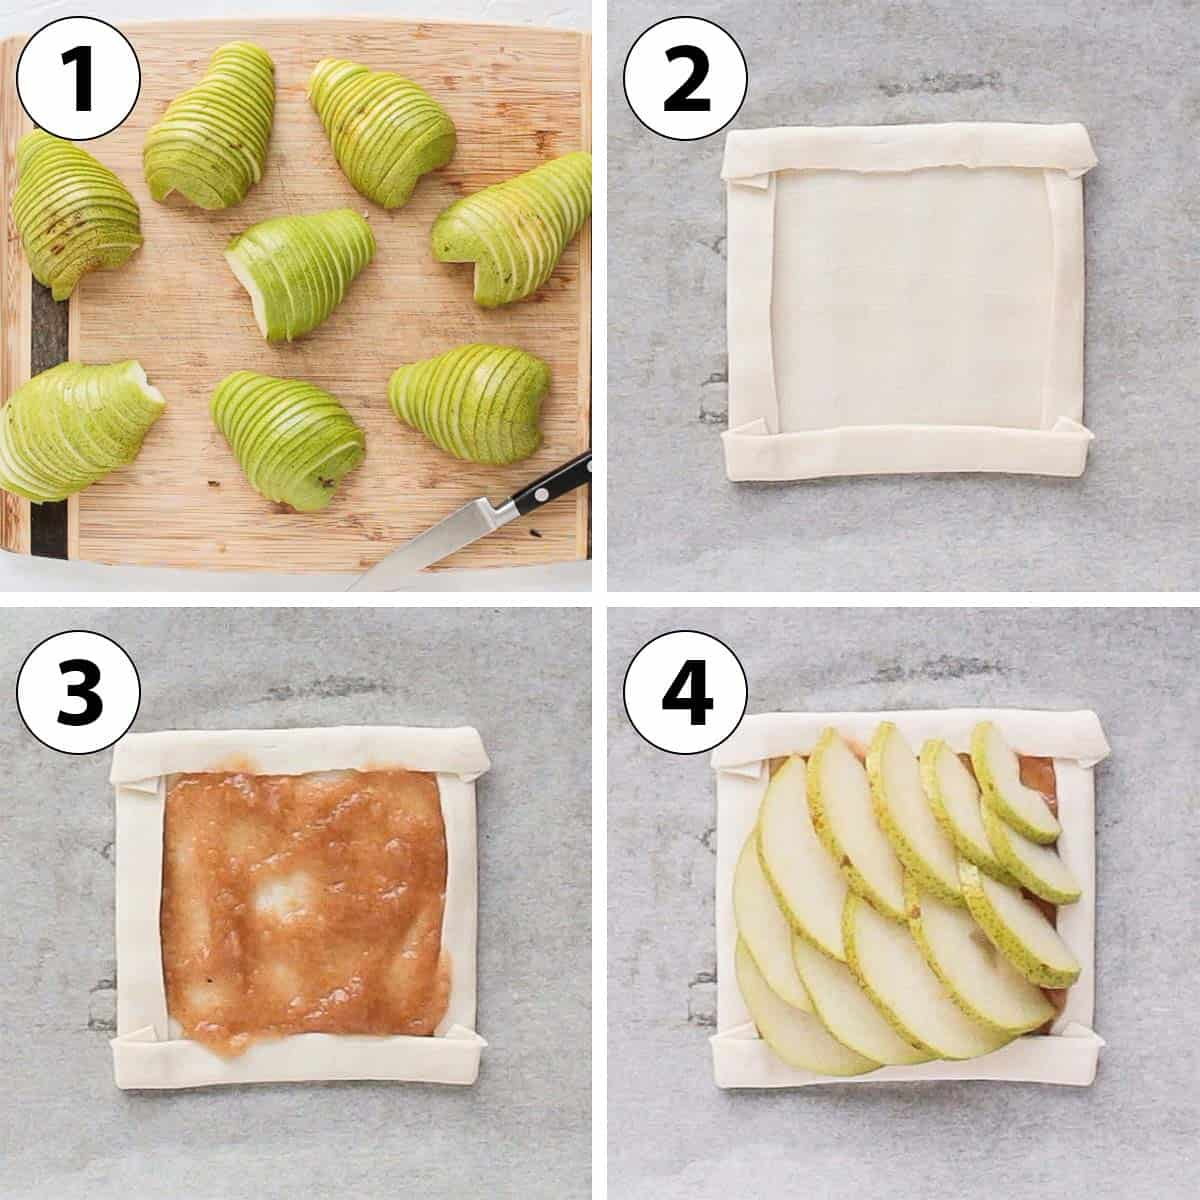 Process Shot Collage: cutting the pears and assembling the tarts.